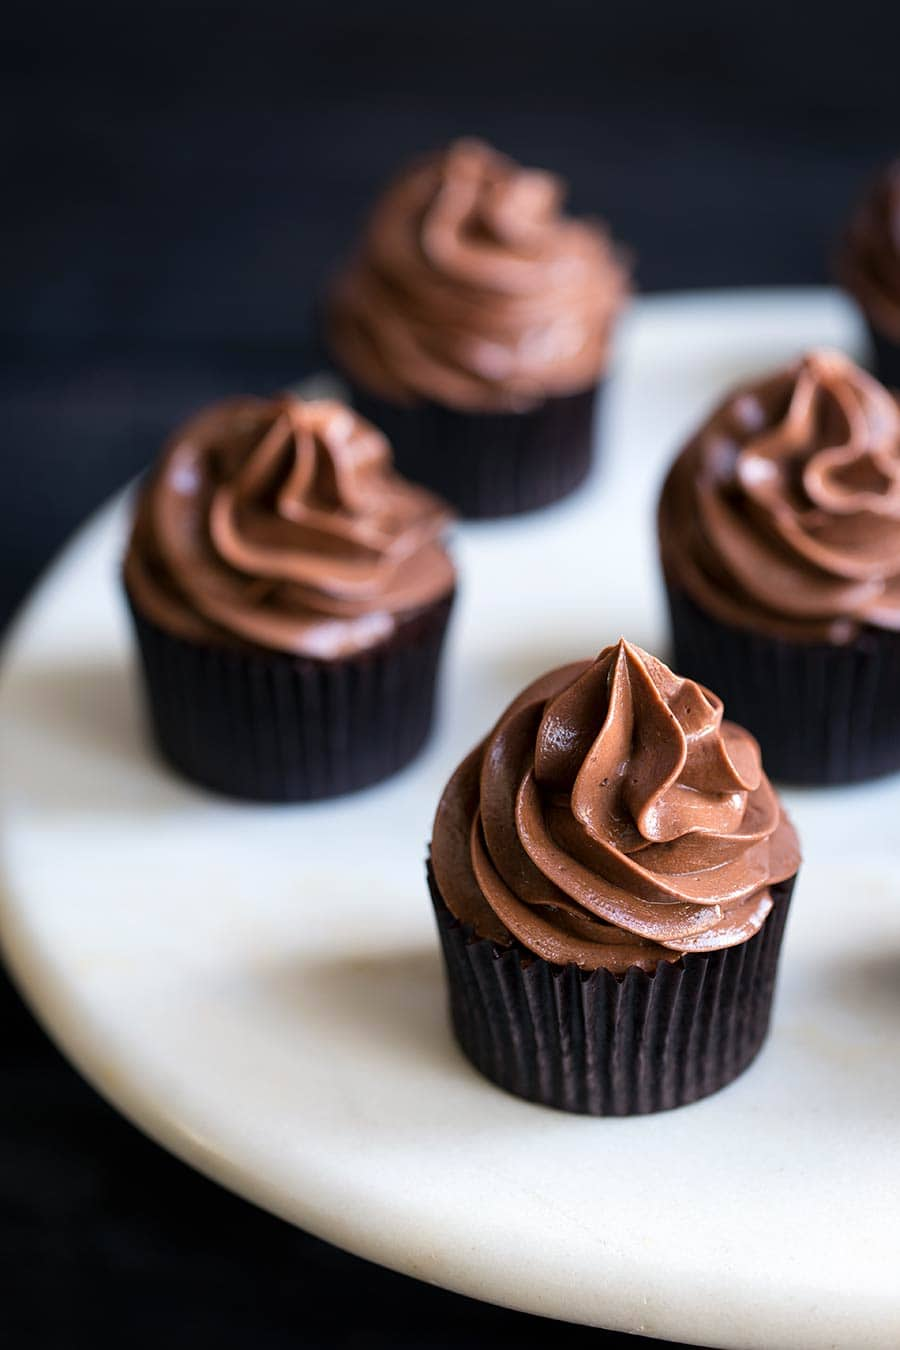 The best chocolate cupcakes recipe!